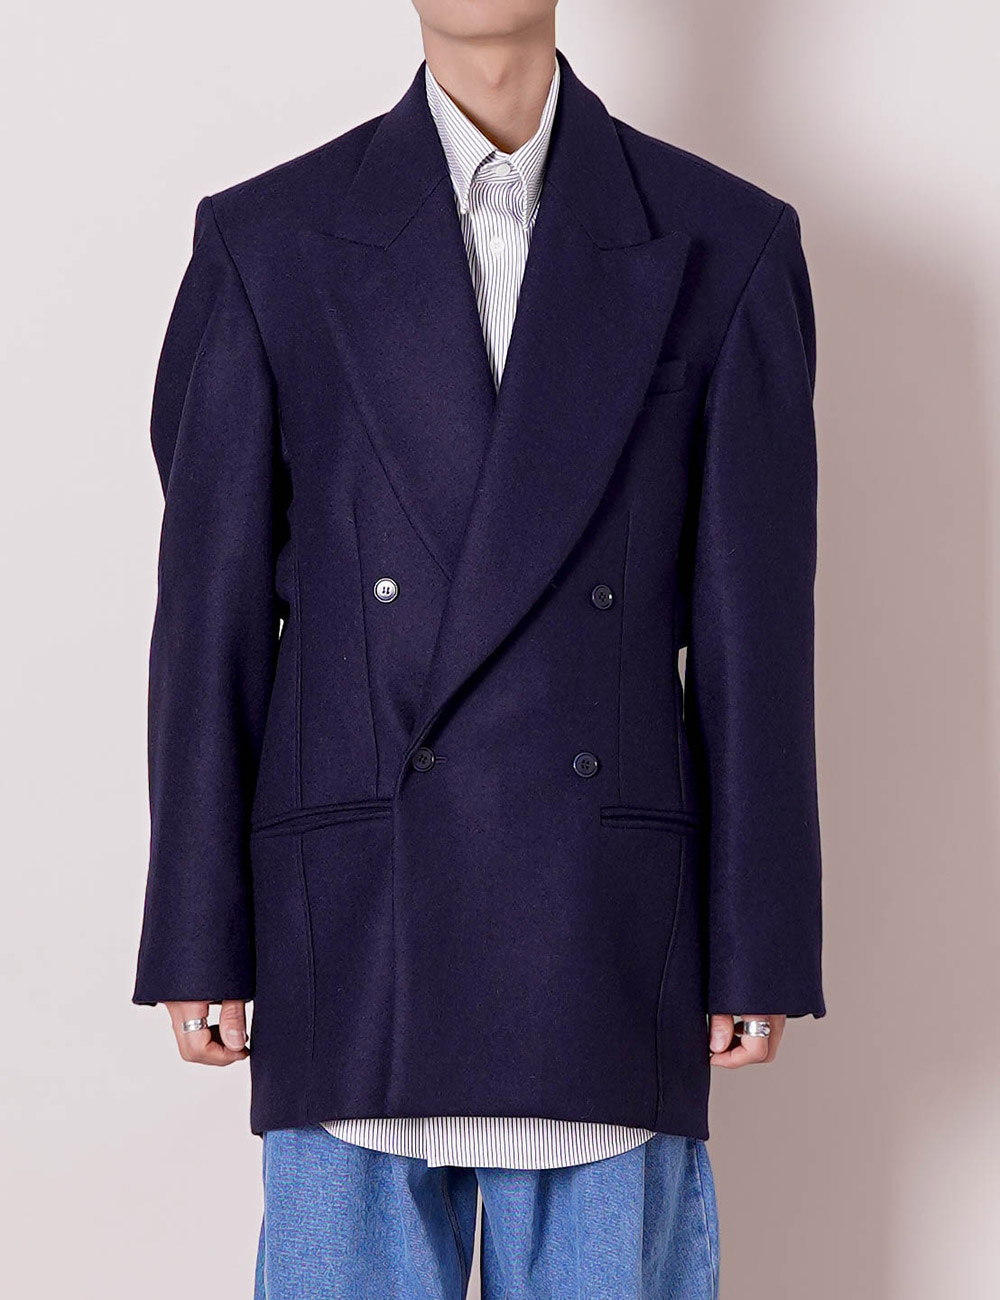 HED MAYNER : FALLING BACK DB JACKET (NAVY)